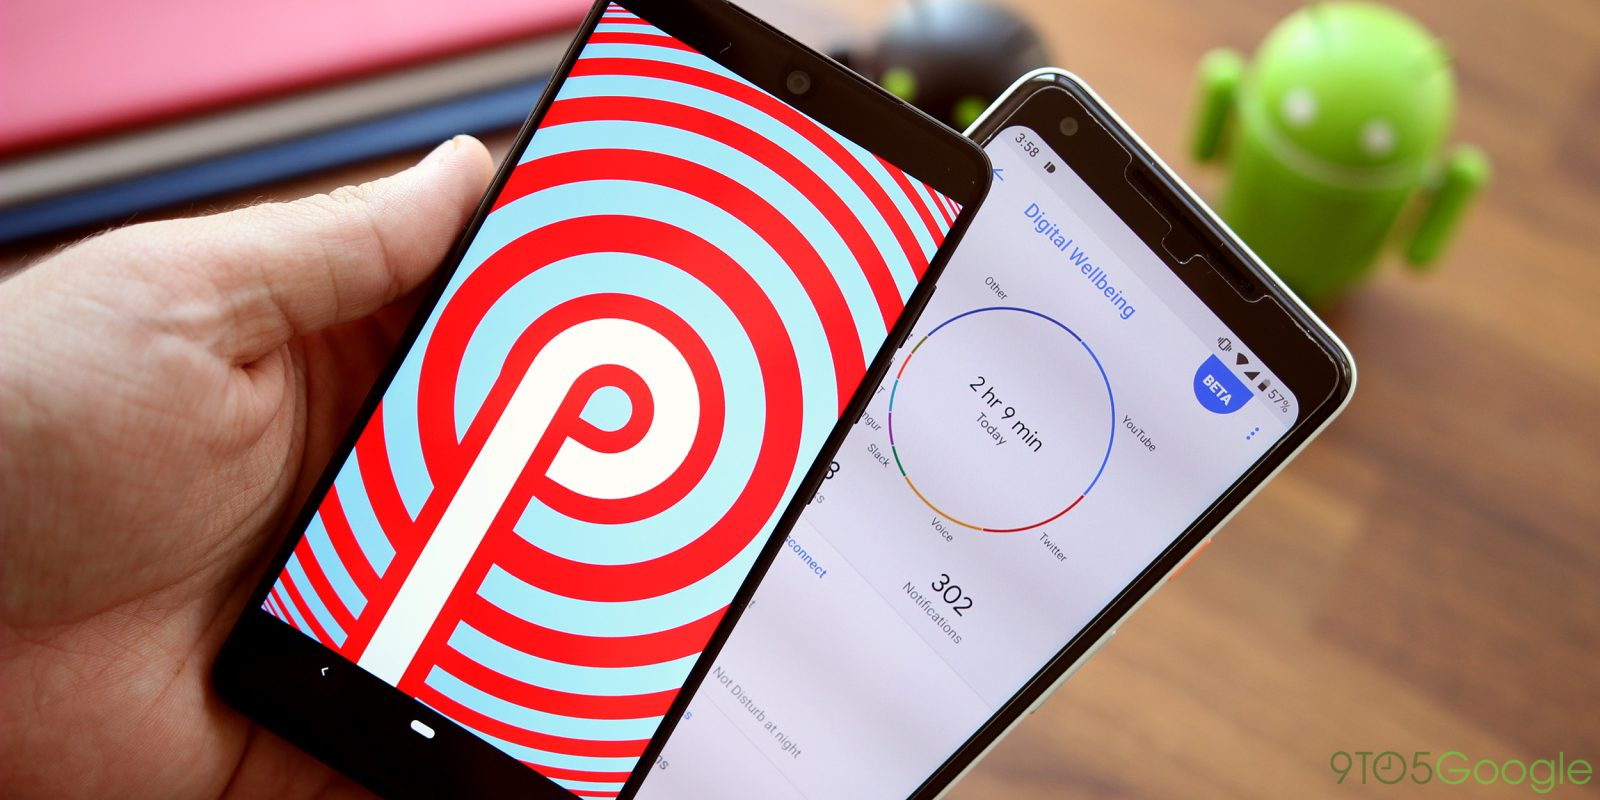 This week's top stories: Android Pie, Pixel 3 XL leaks